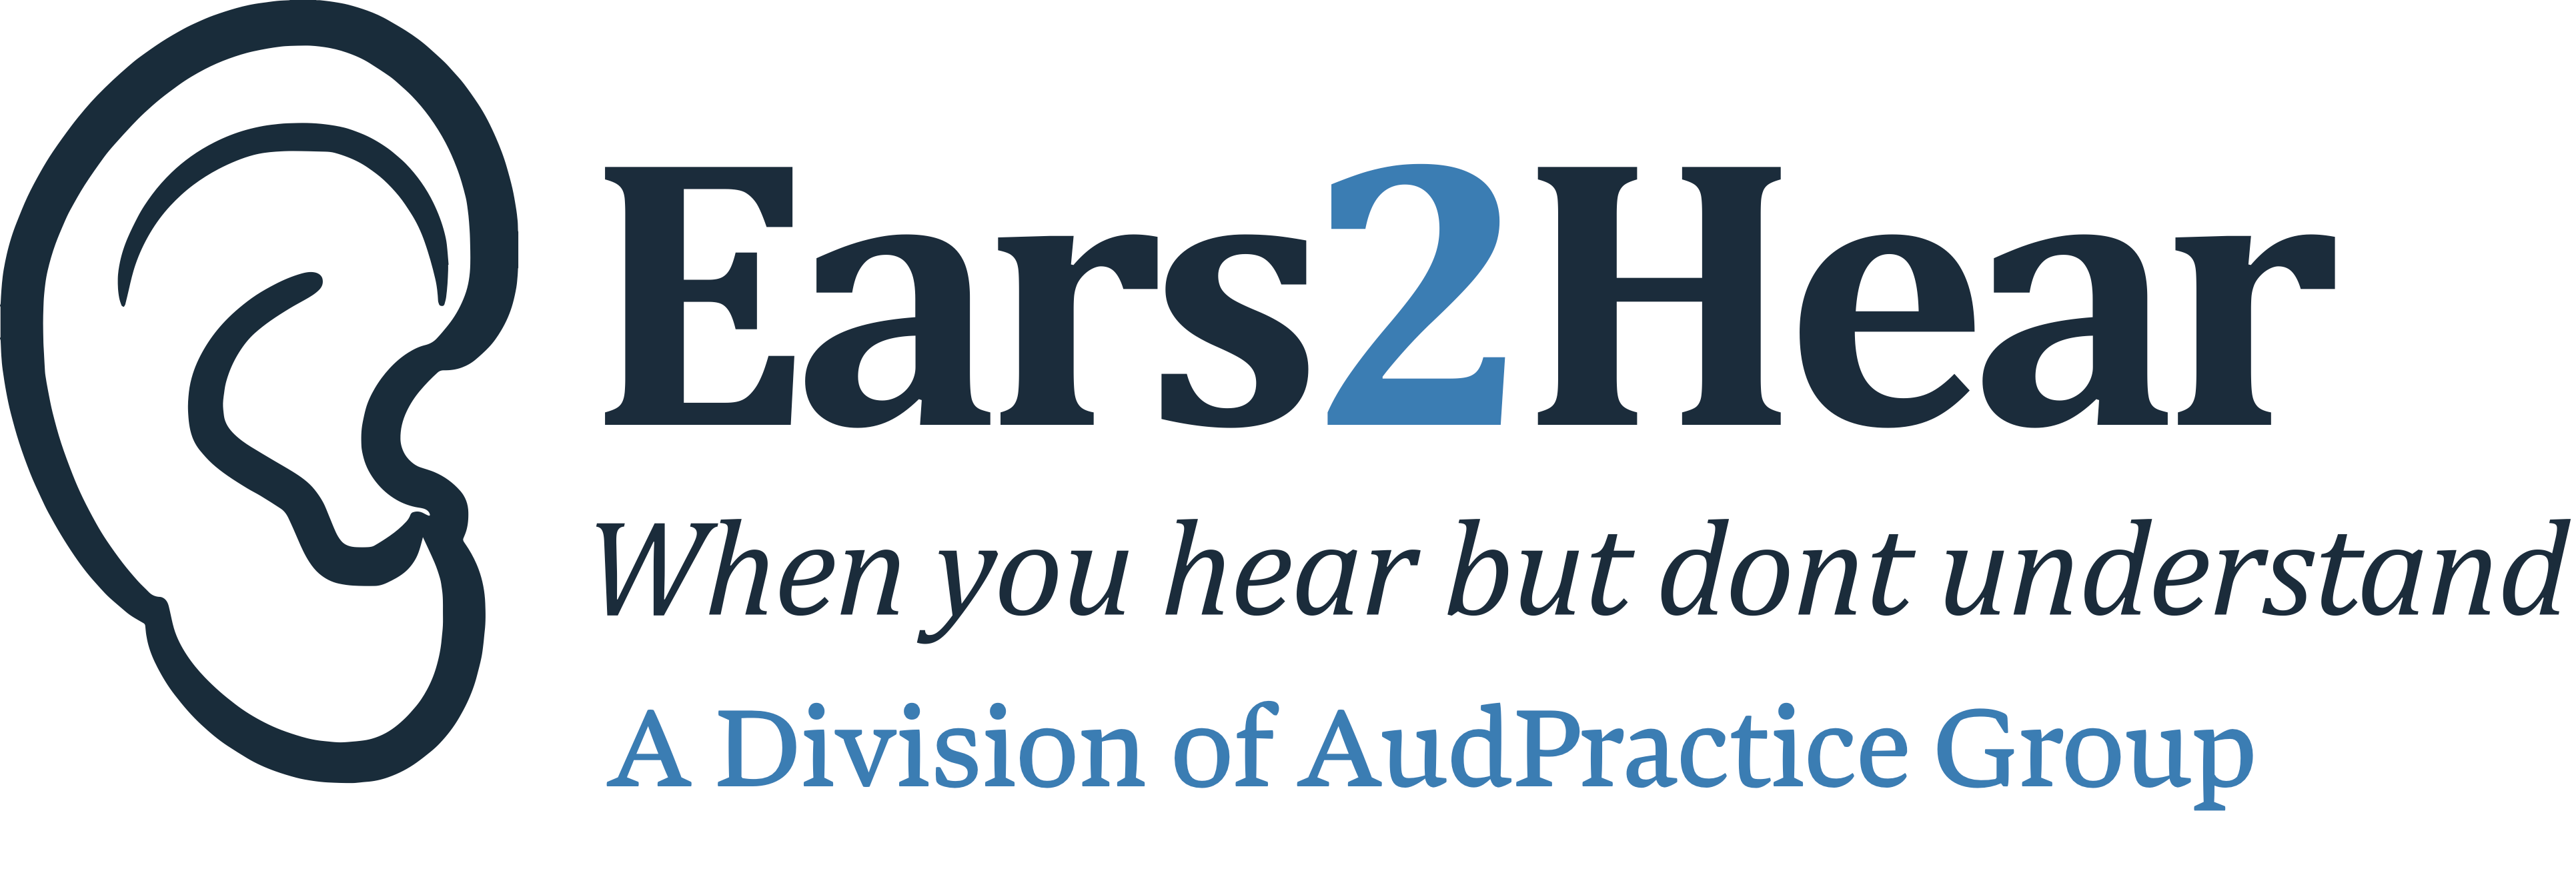 APG-Ears-2-Hear.png